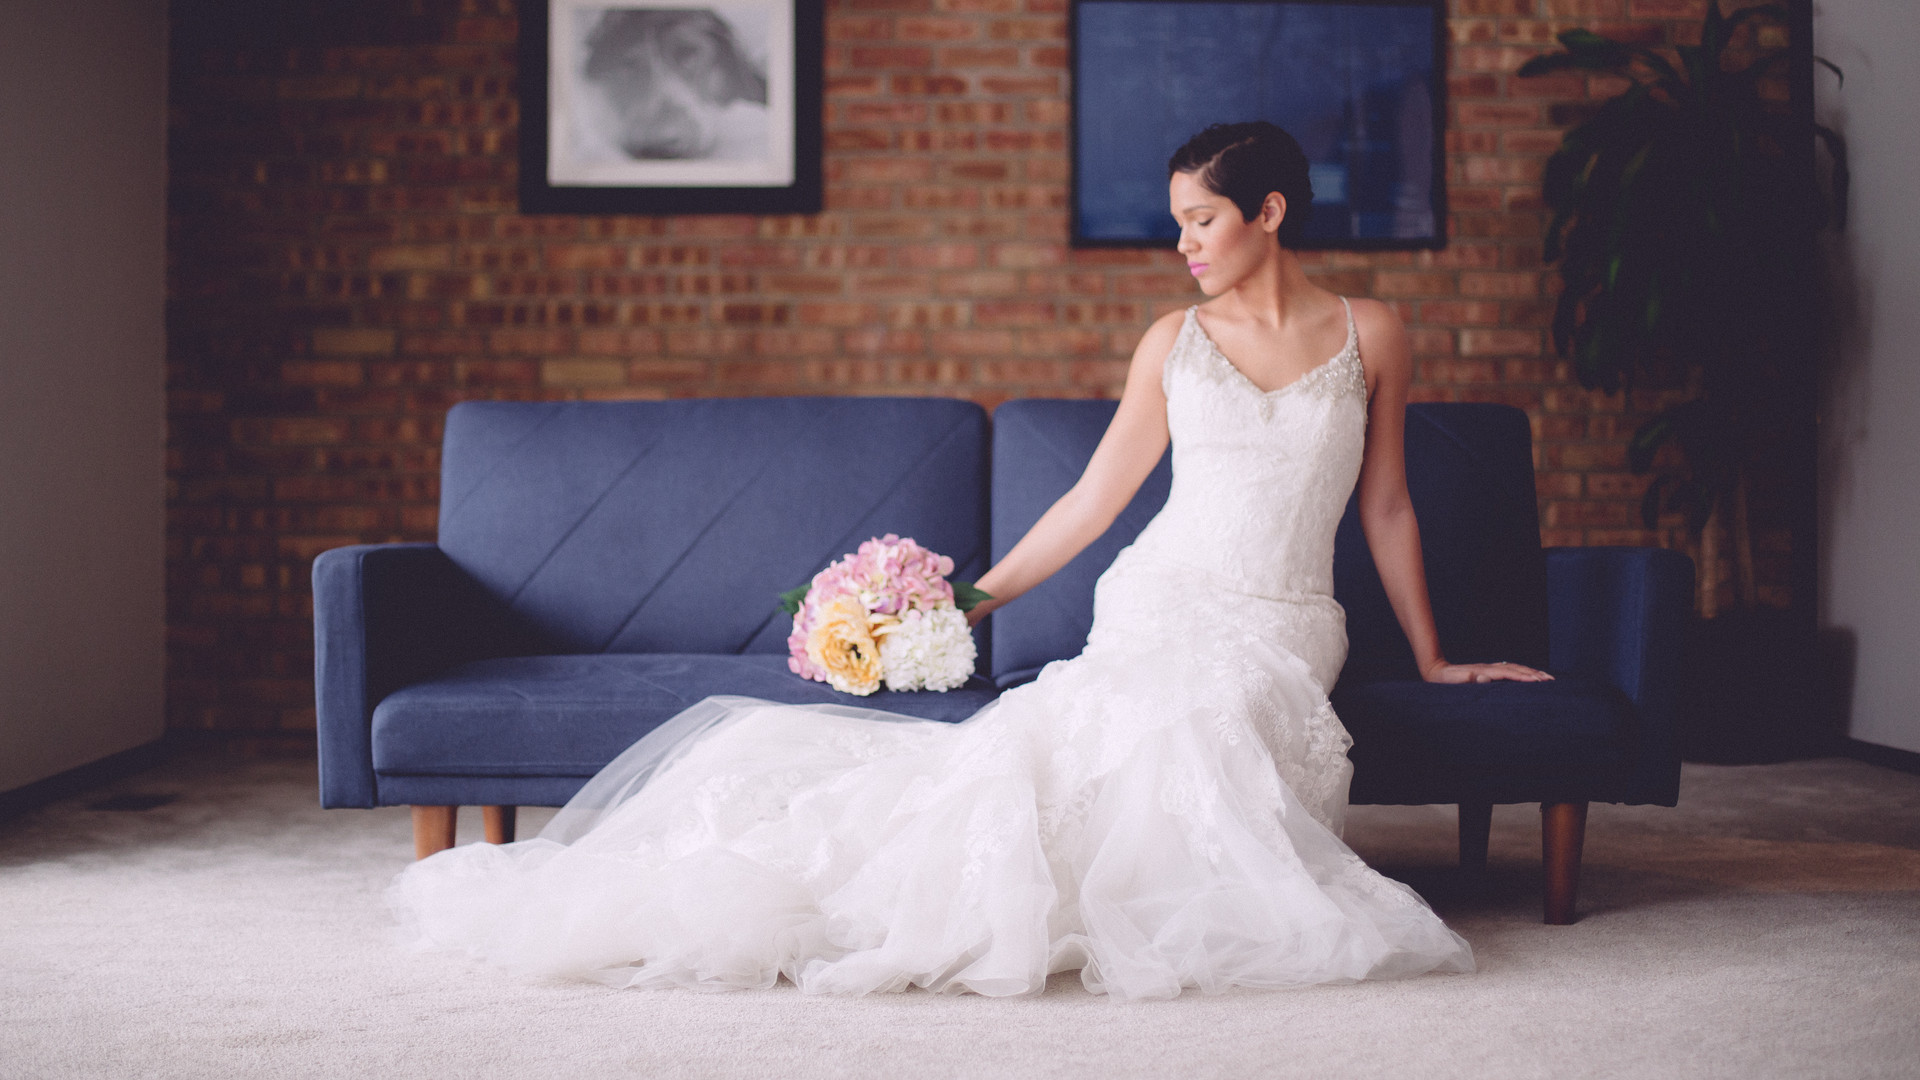 Bride on Blue Couch